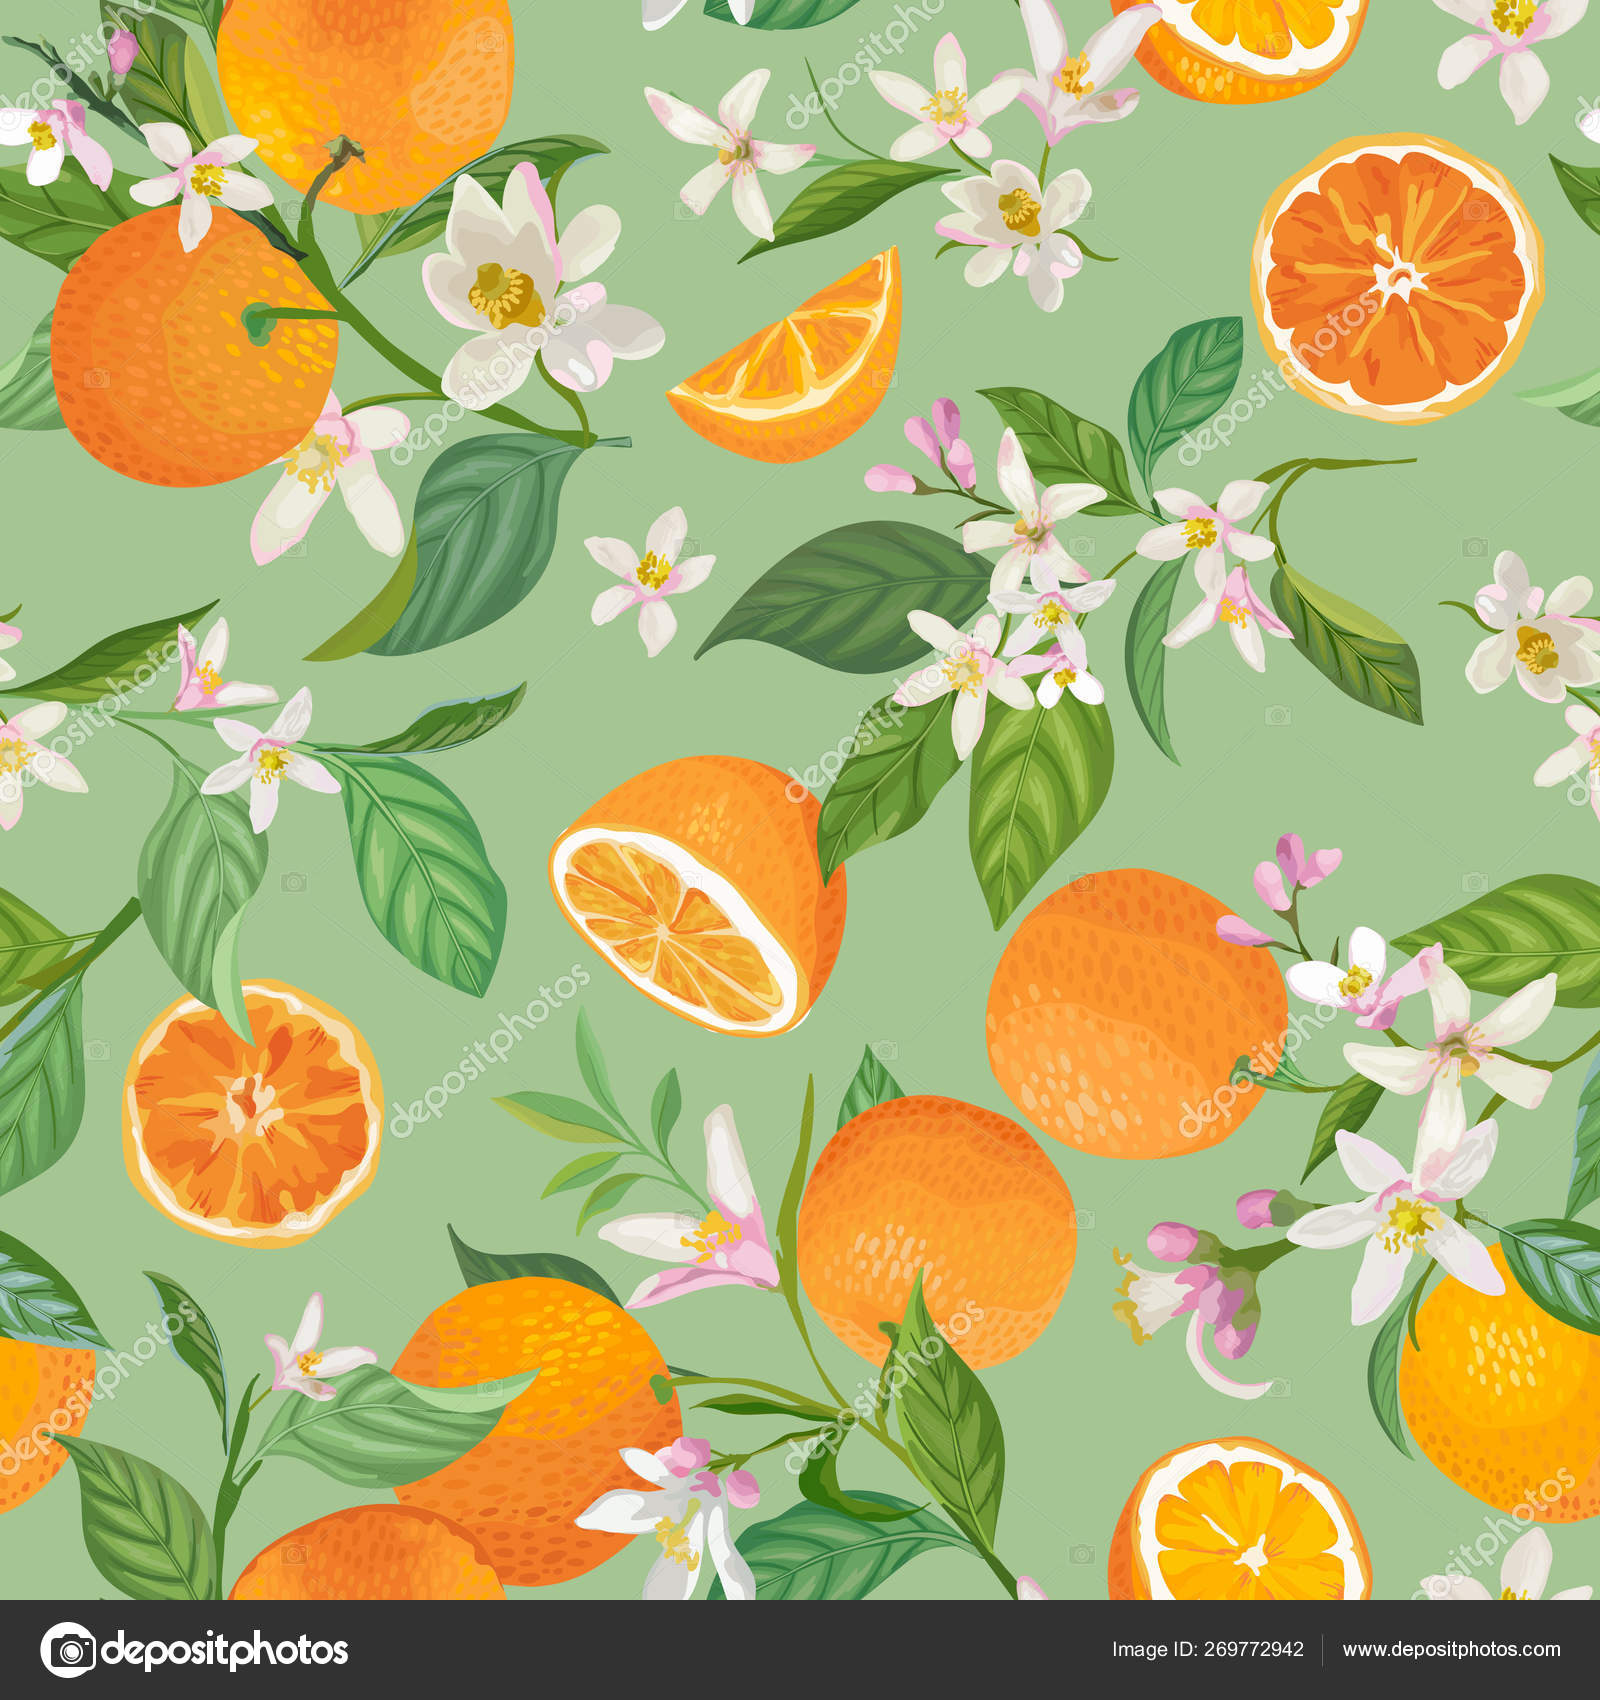 depositphotos 269772942 stock illustration seamless orange pattern with tropic